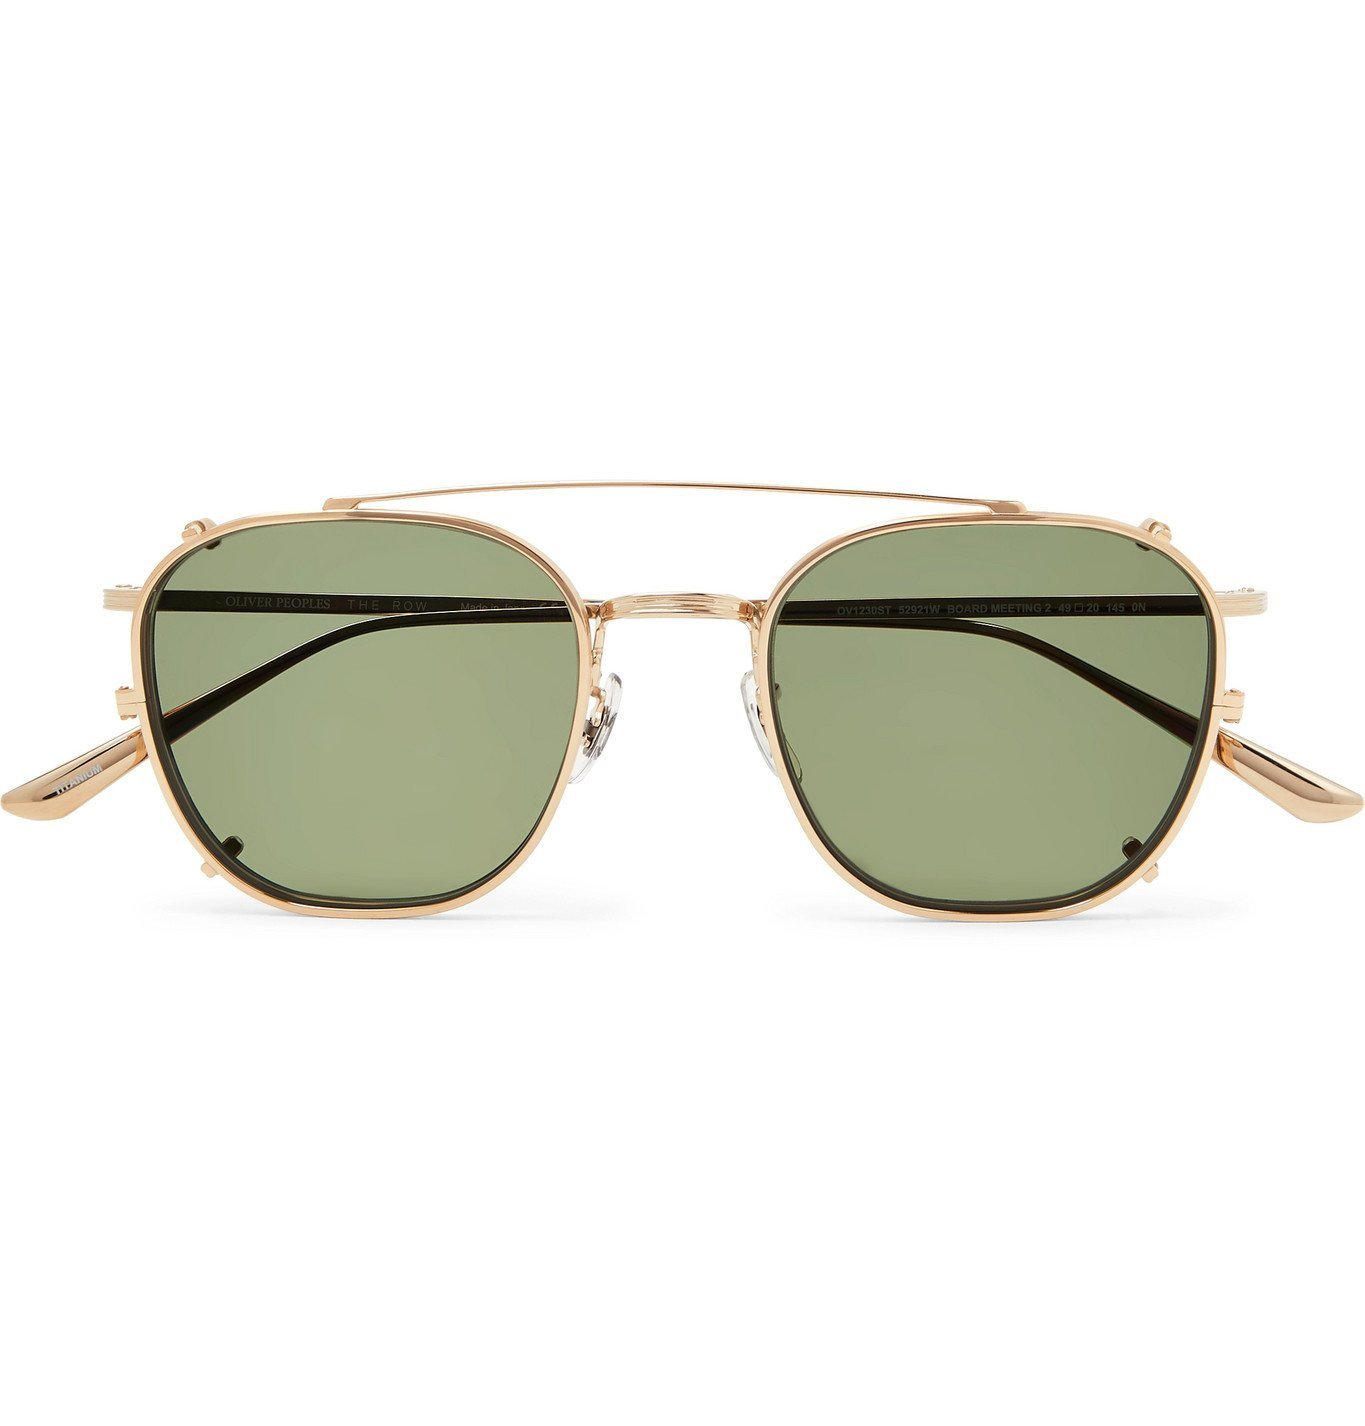 Photo: The Row - Oliver Peoples Board Meeting 2 Aviator-Style Gold-Tone Optical Glasses with Clip-On UV Lenses - Gold